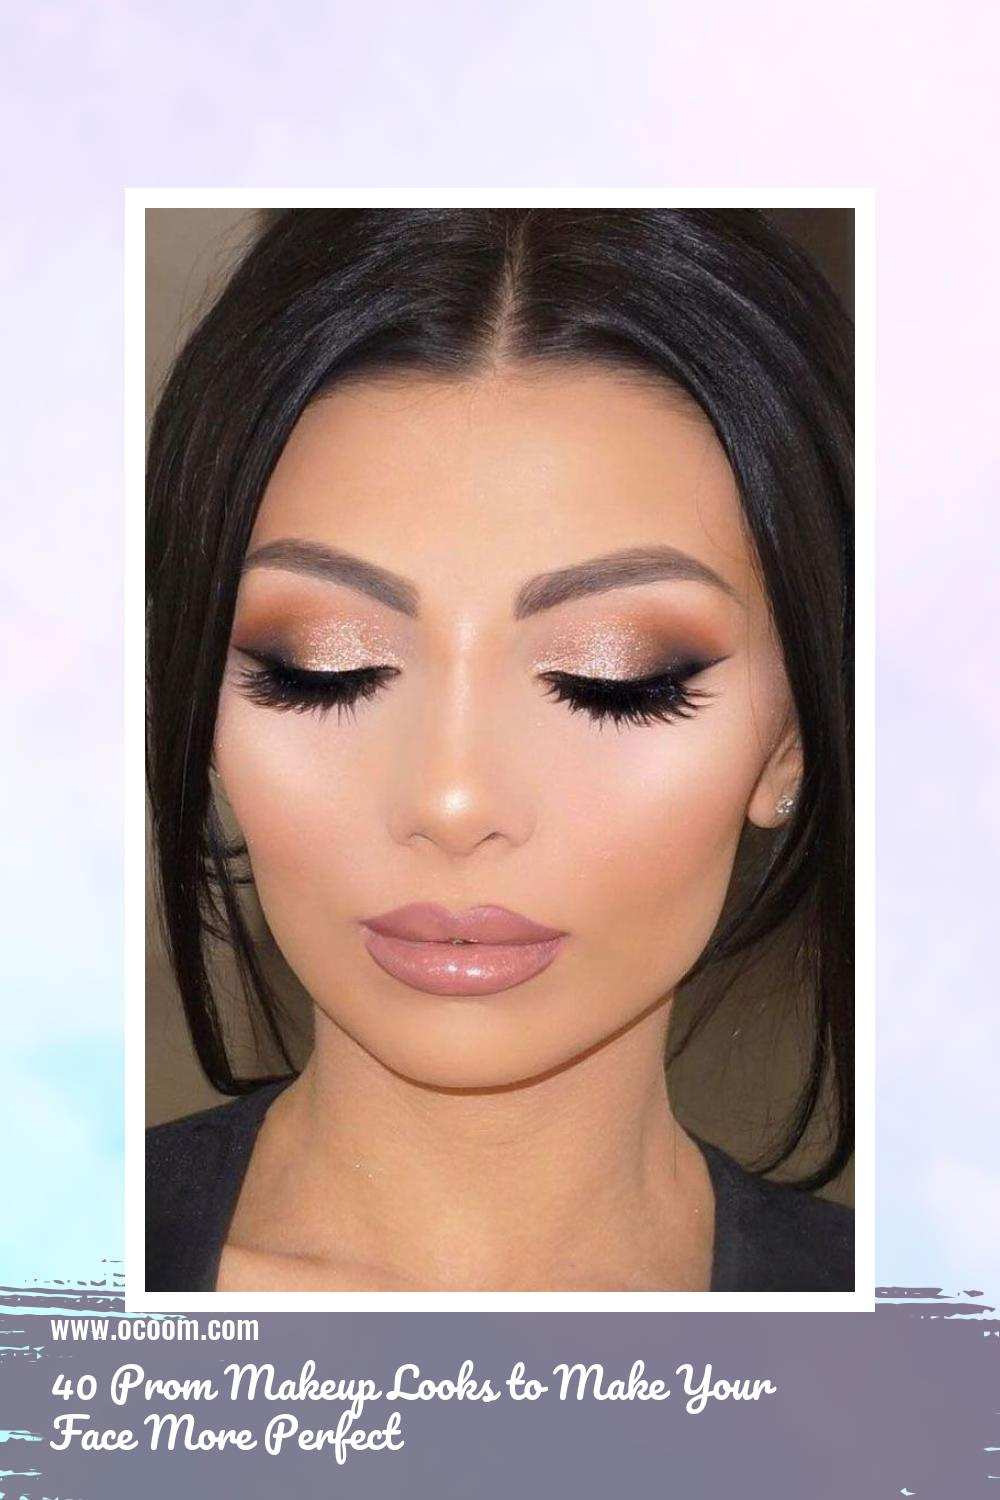 40 Prom Makeup Looks to Make Your Face More Perfect 9